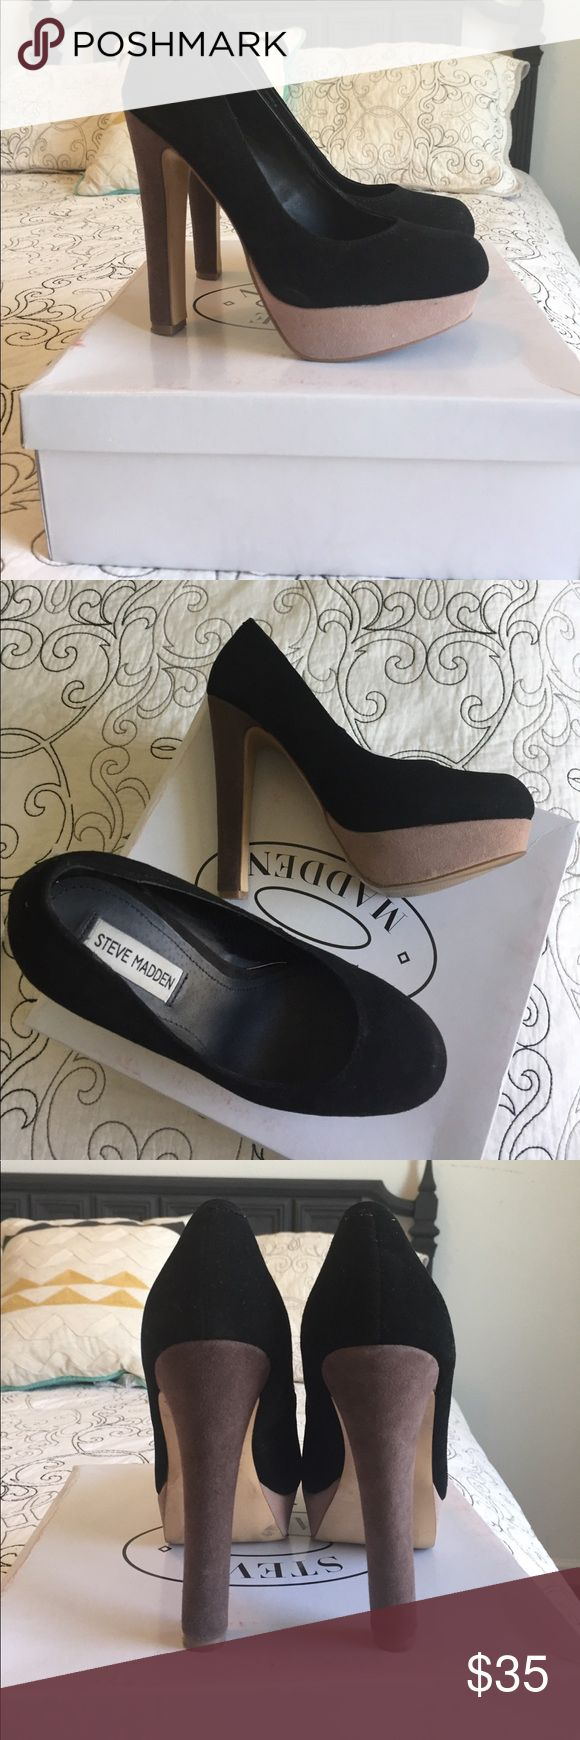 Steve Madden Beasst Pumps Super cute, soft suede, multi-colored heels. Worn twice. Still have box and wrapping. Shoes have never been stored outside of box. Steve Madden Shoes Heels